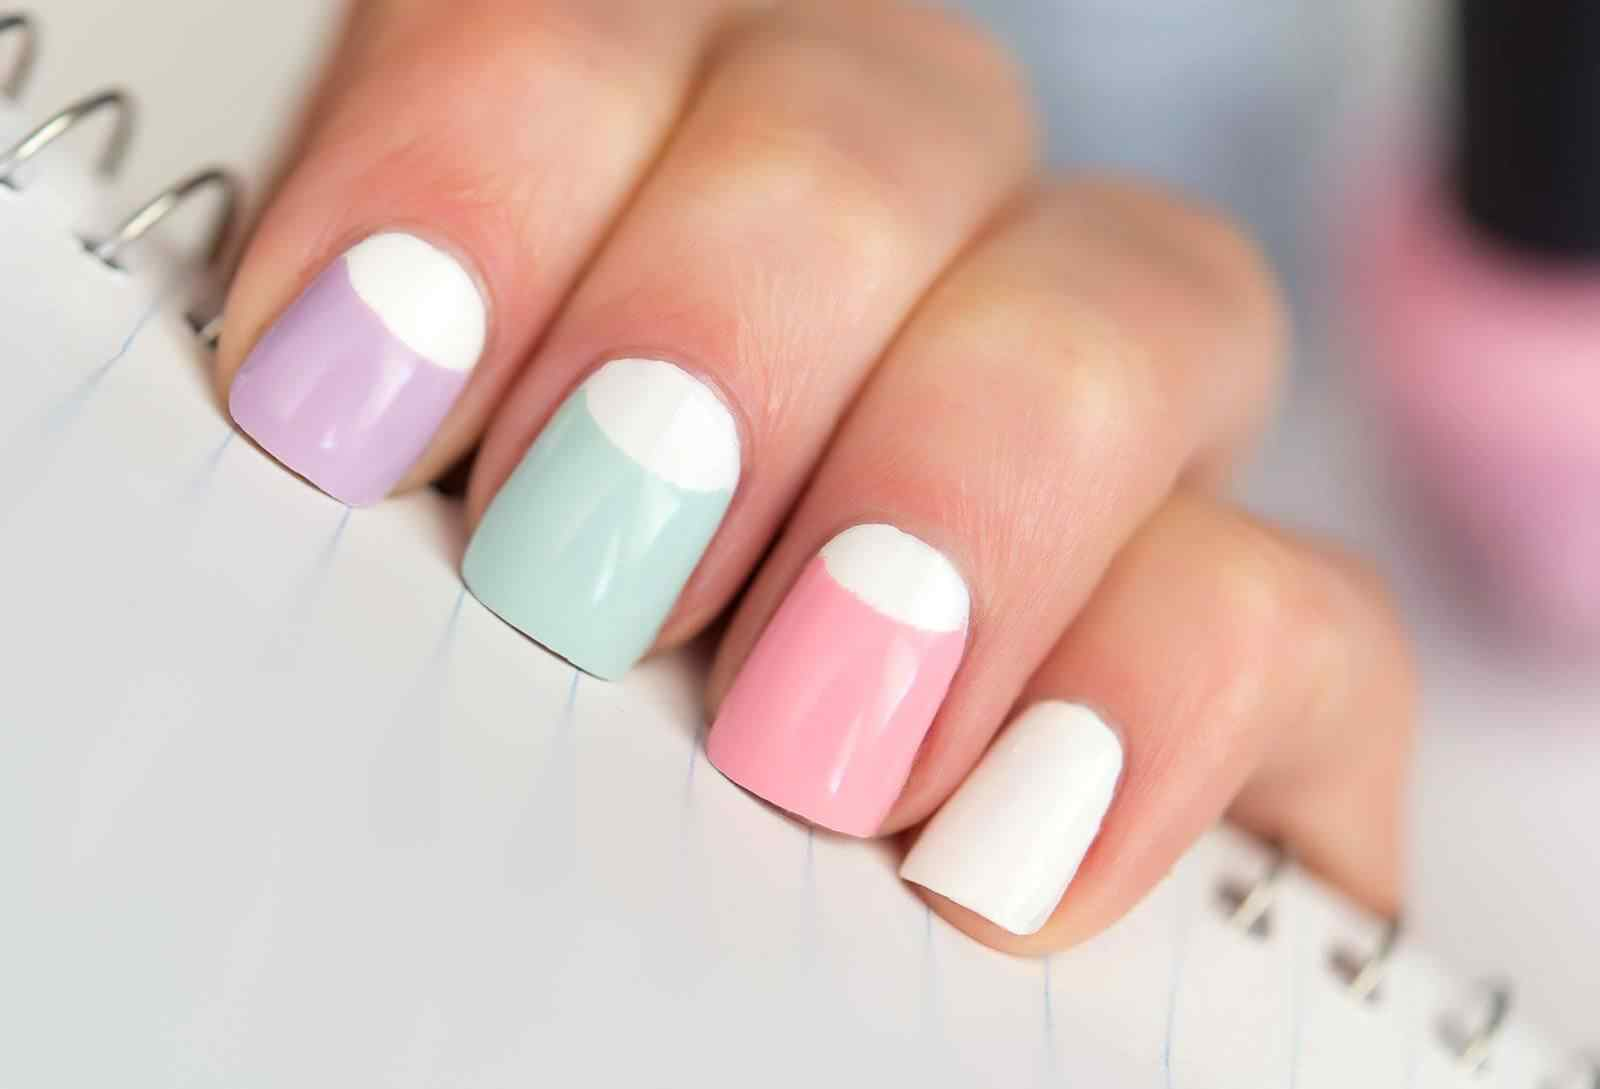 Fuente: http://fashionfuz.com/nails/cute-pastel-nails-design/attachment/1998/